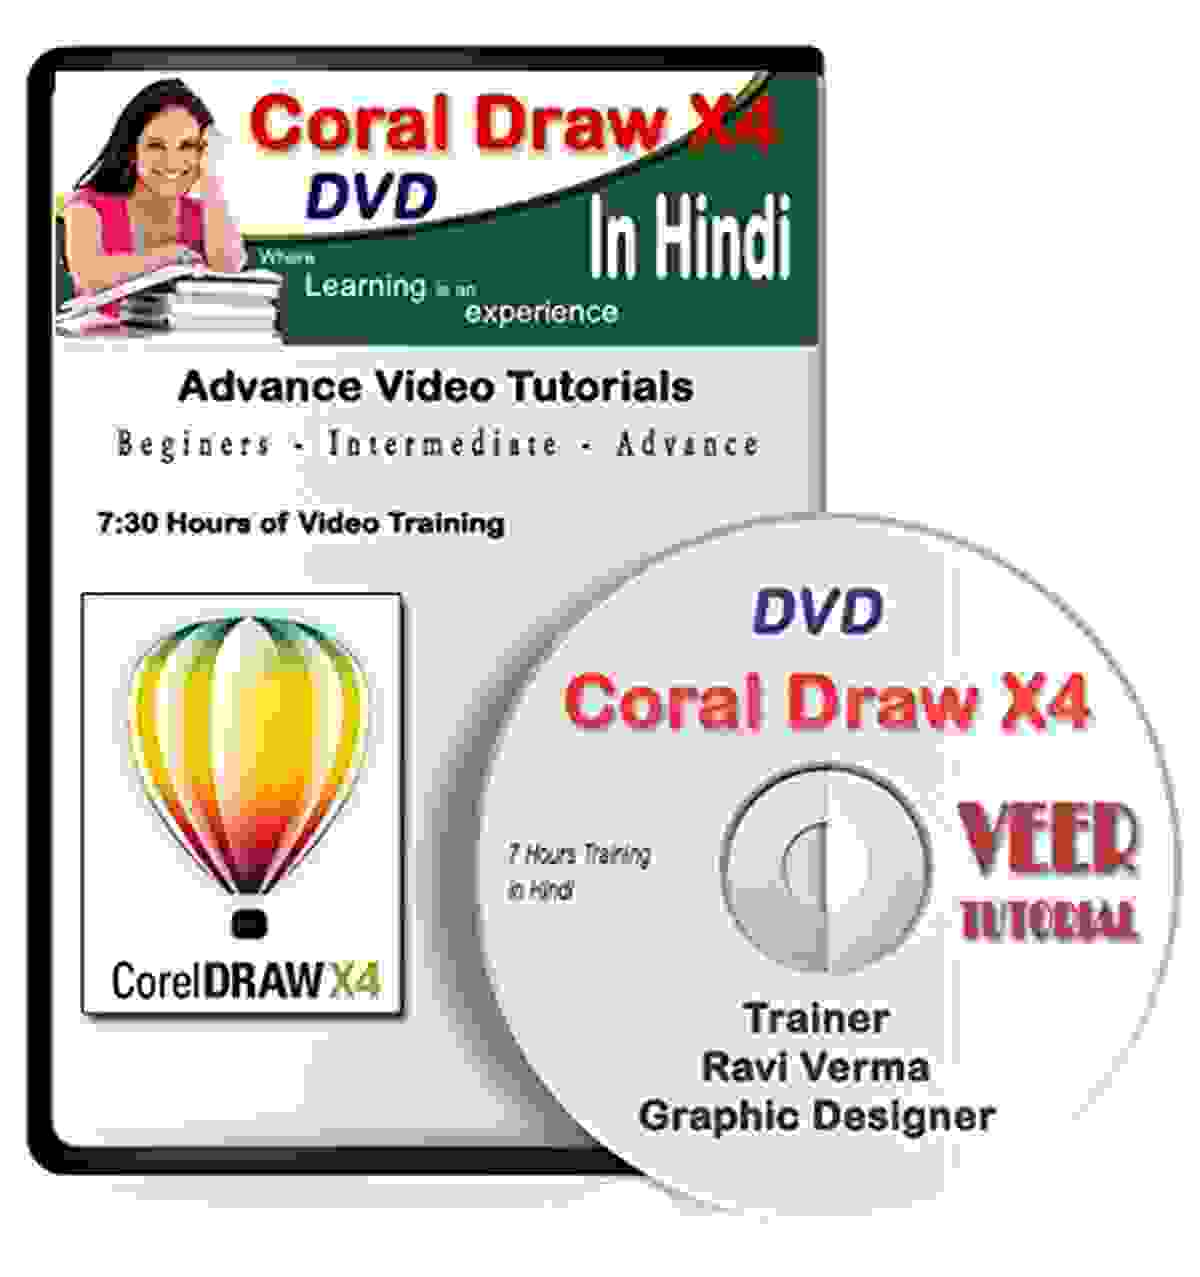 CorelDRAW Tutorial DVD Video Training (1 DVD, 7 Hrs) in Learning Hindi Video